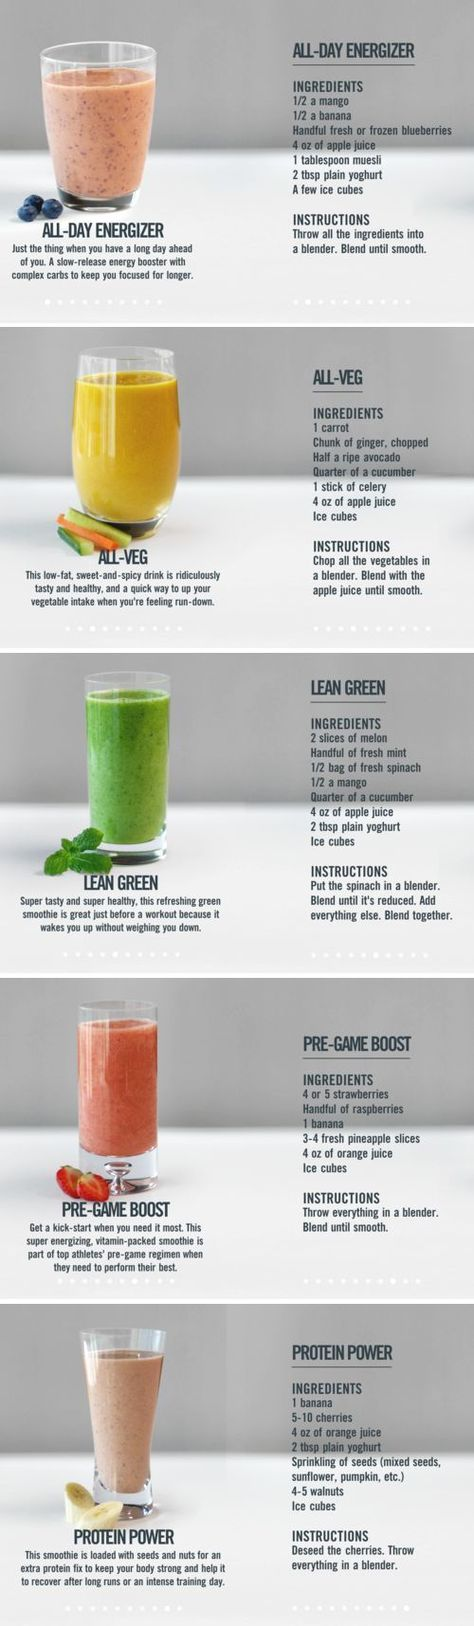 These delicious smoothies are the perfect energy booster you need for